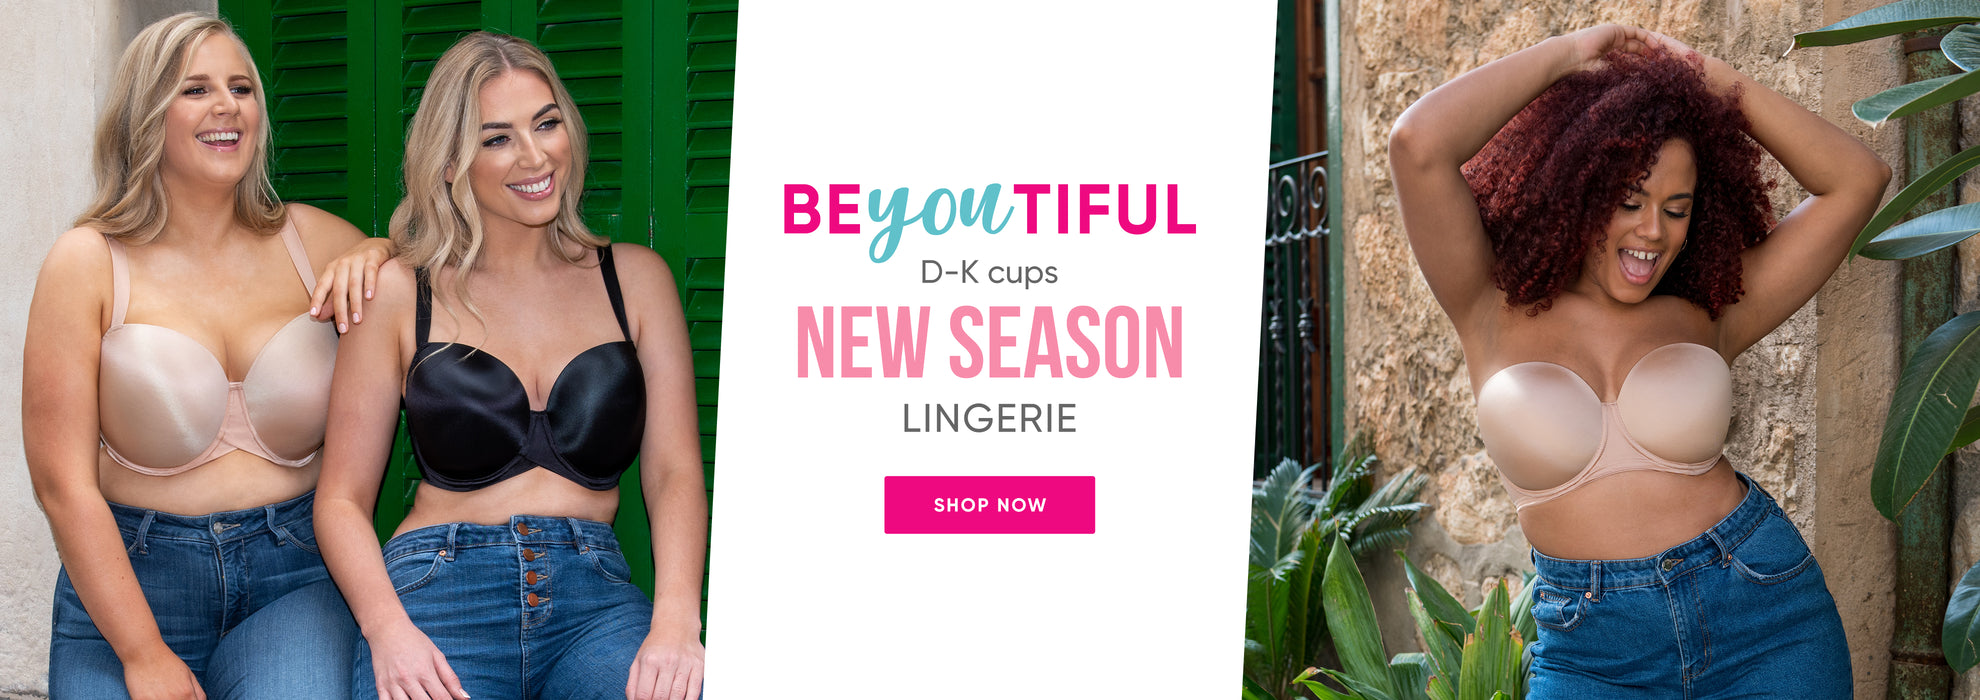 New Lingerie - Smoothie Collection